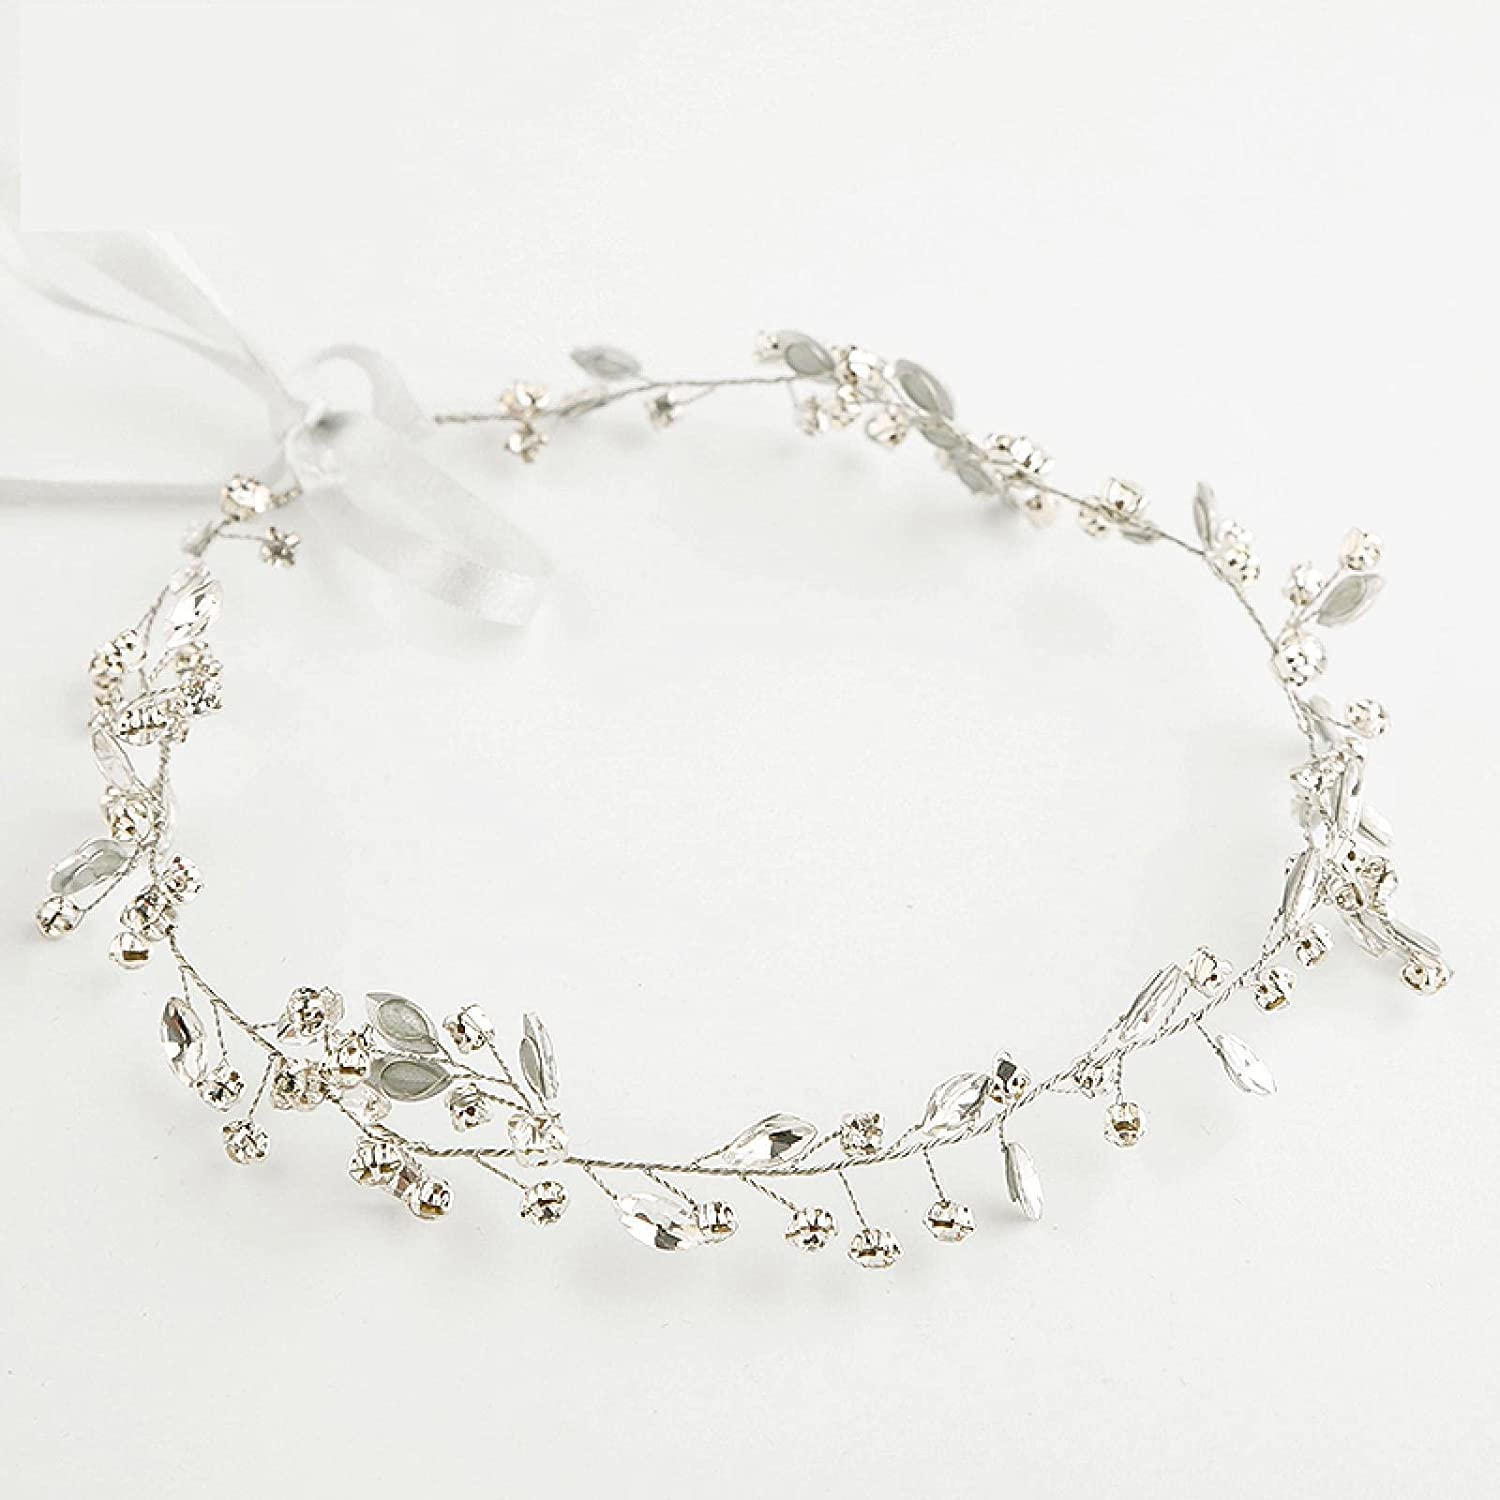 European Wedding Brand new Hairbands Handmade Hairban Little Sales of SALE items from new works Pearls Brides